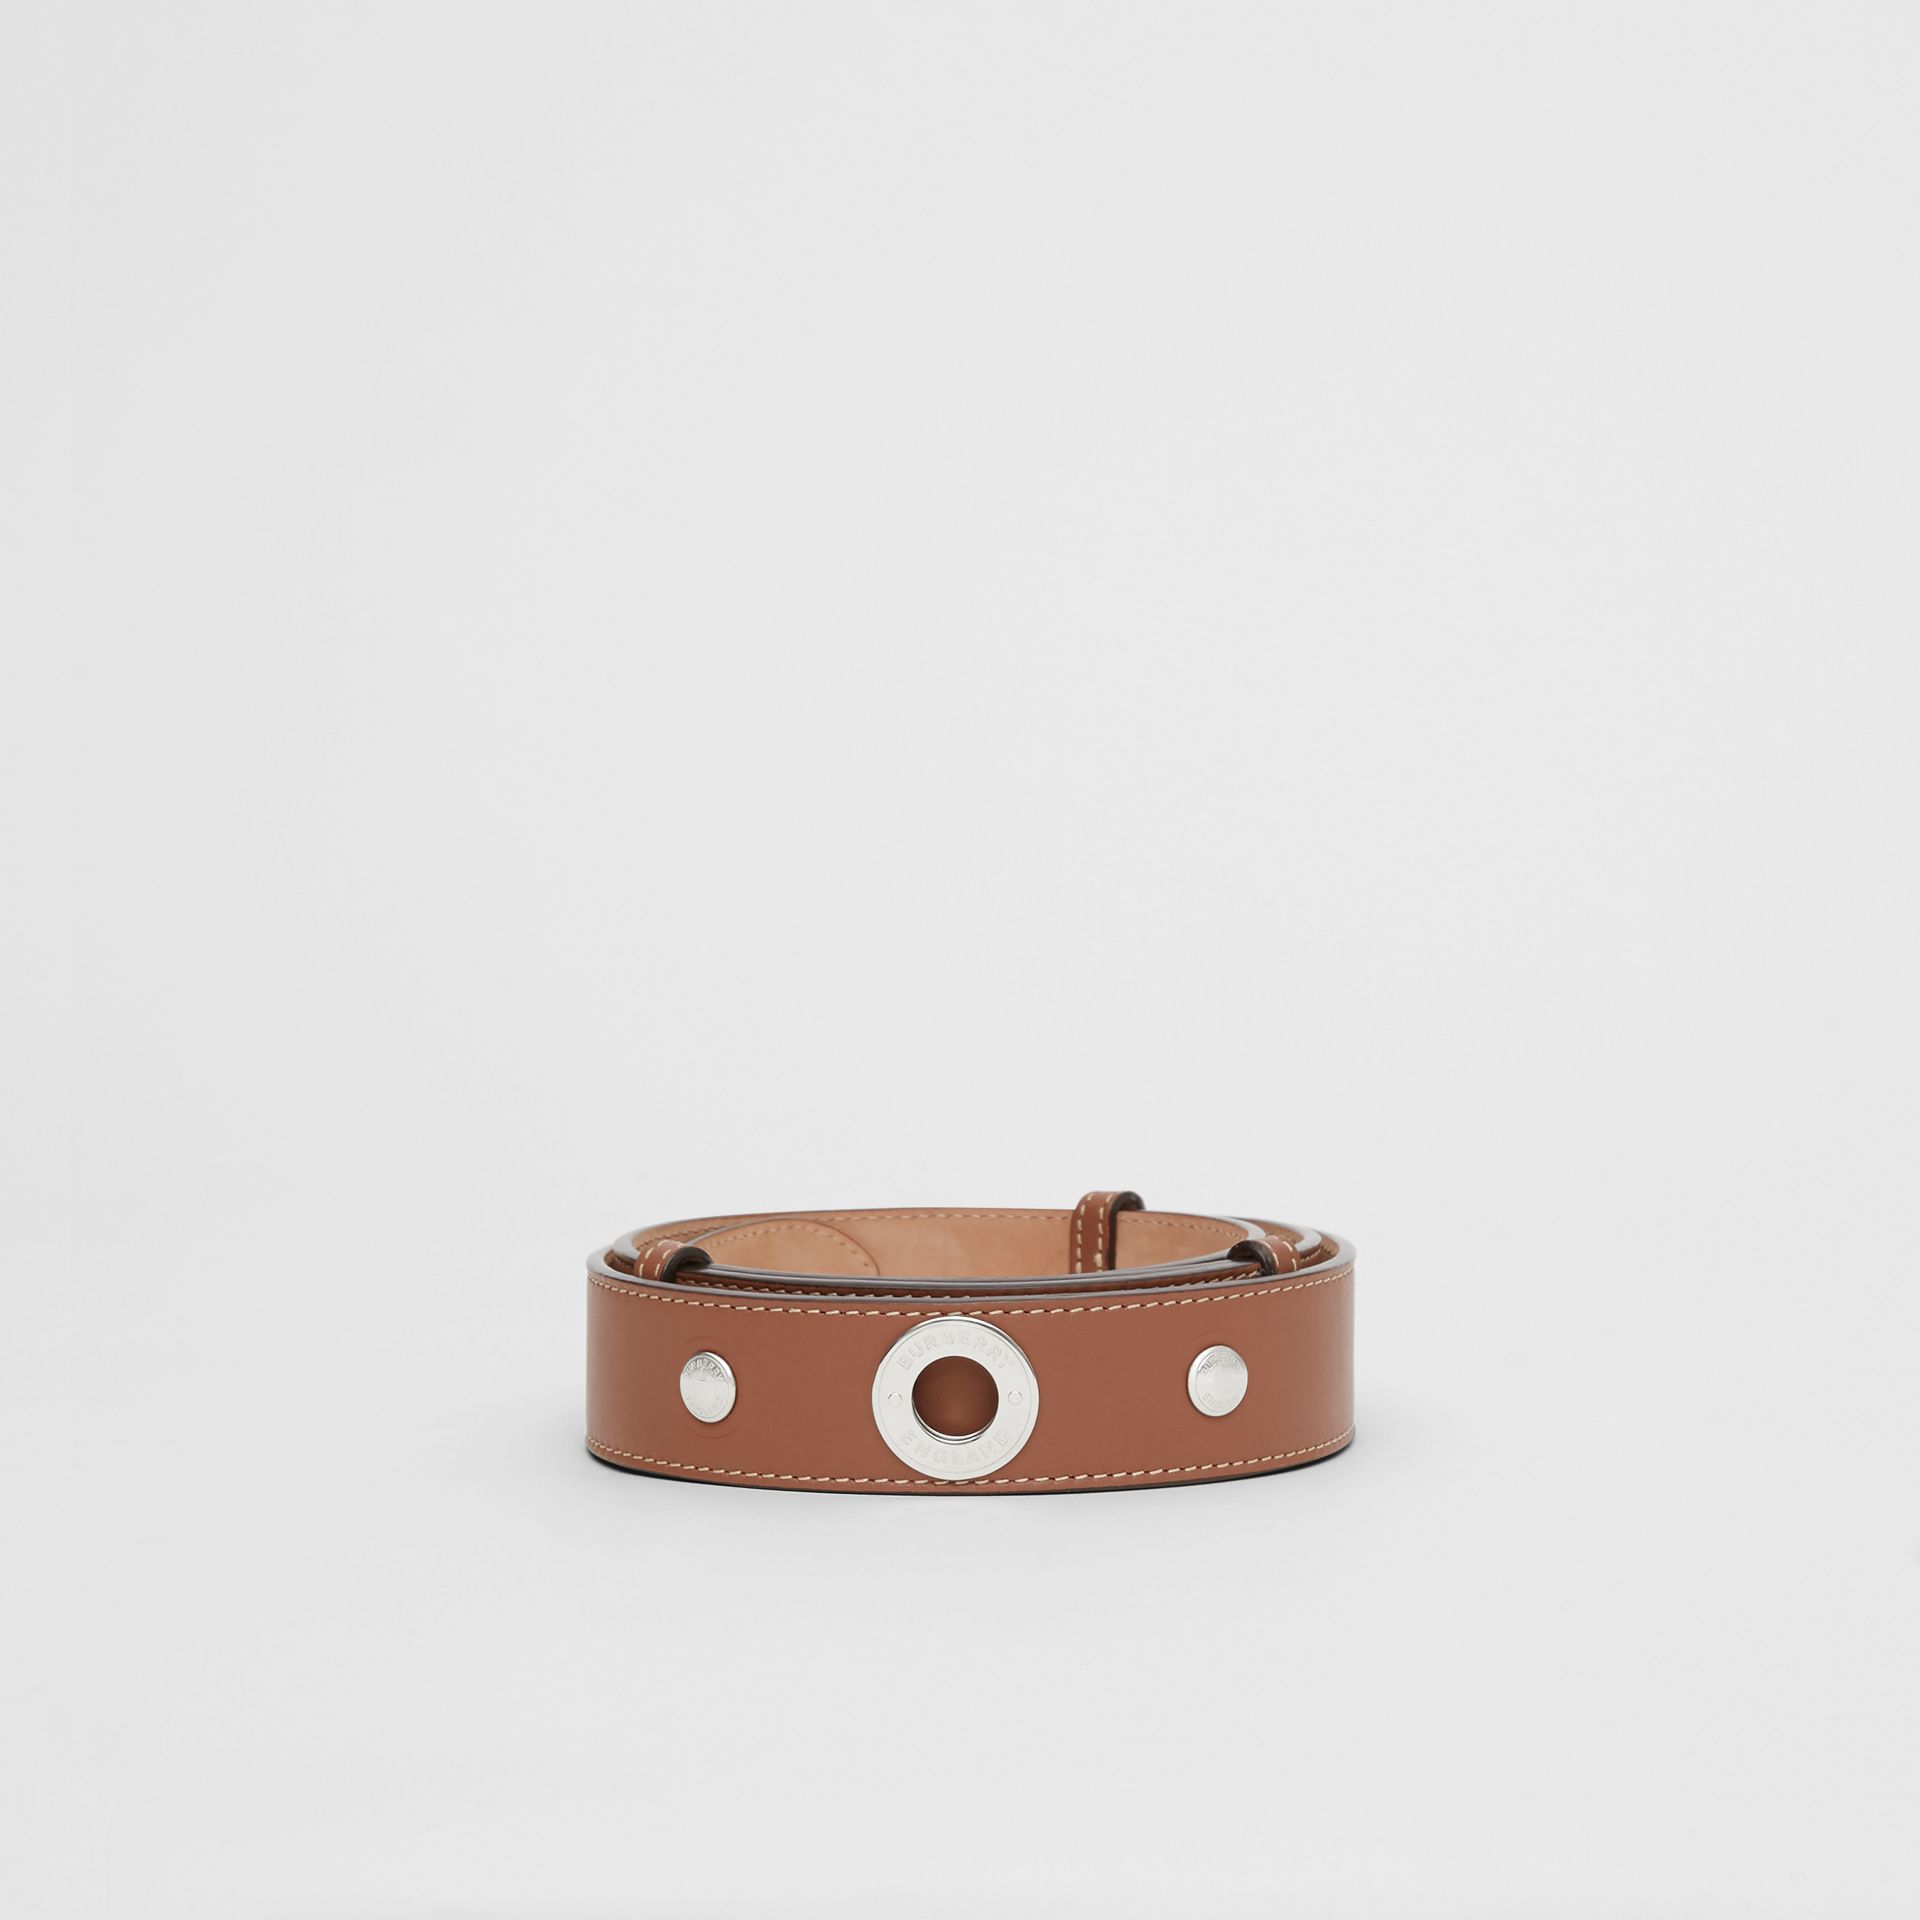 Triple Stud Leather Belt in Malt Brown - Women | Burberry - gallery image 2